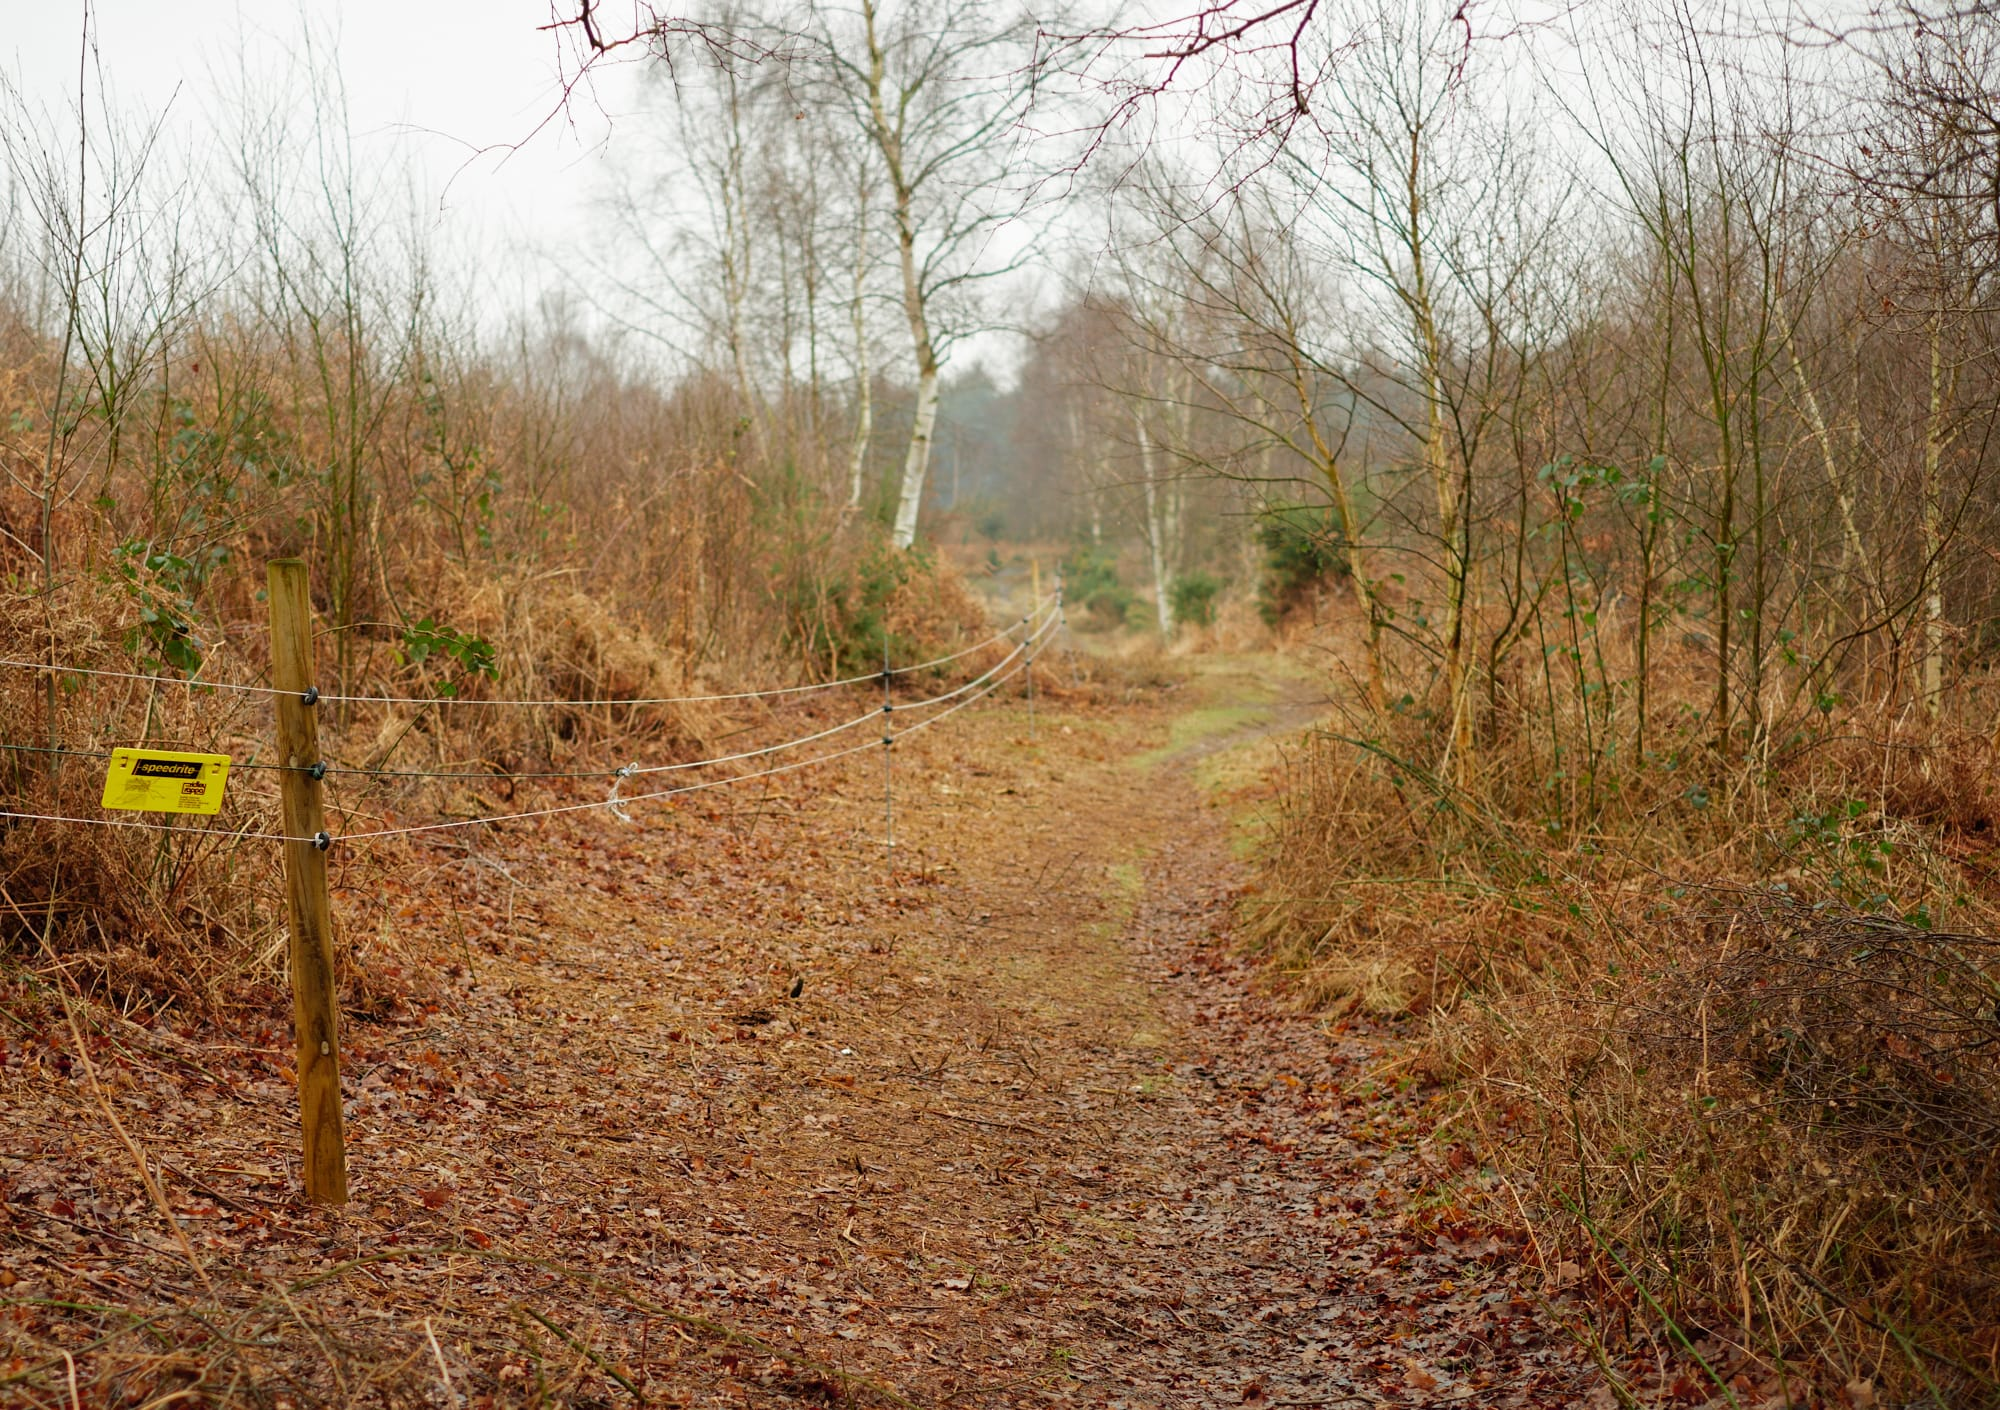 wire fence alongside a forest path